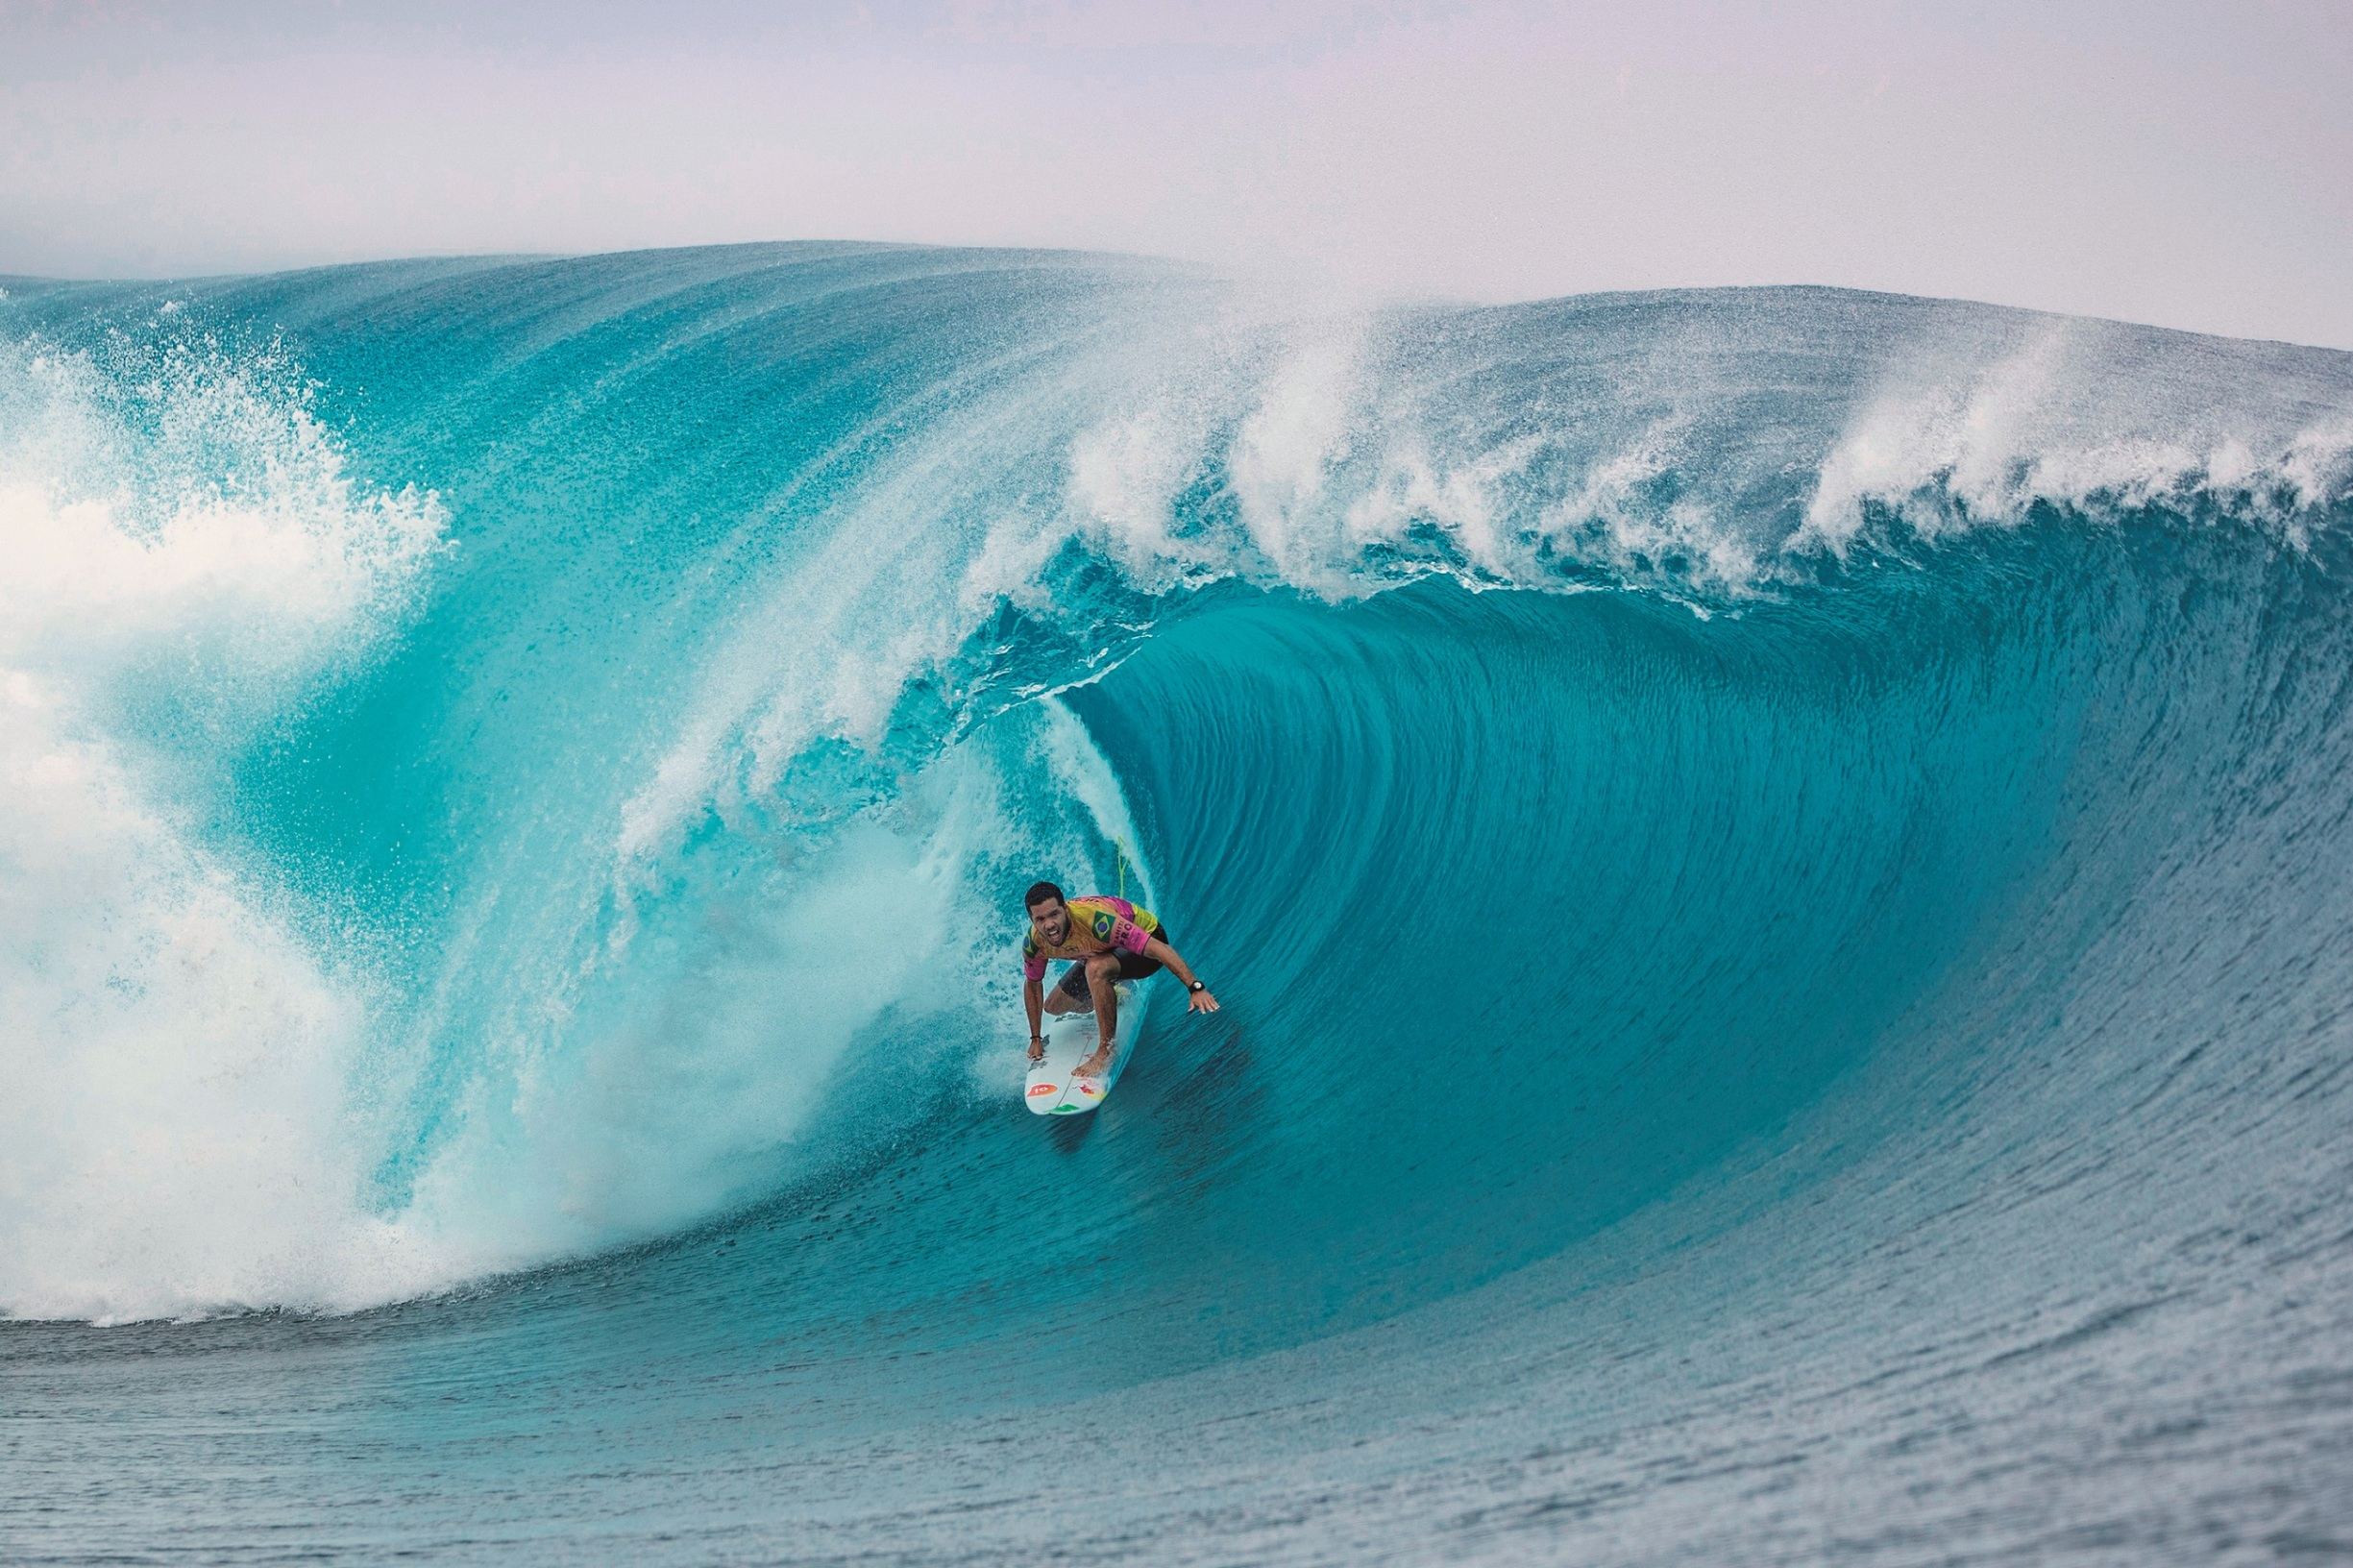 Brazilian surfer Adriano De Souza competes on the third day of the 2019 Tahiti Pro at Teahupoo, Tahiti, on August 28, 2019., Image: 467626117, License: Rights-managed, Restrictions: RESTRICTED TO EDITORIAL USE, Model Release: no, Credit line: brian bielmann / AFP / Profimedia